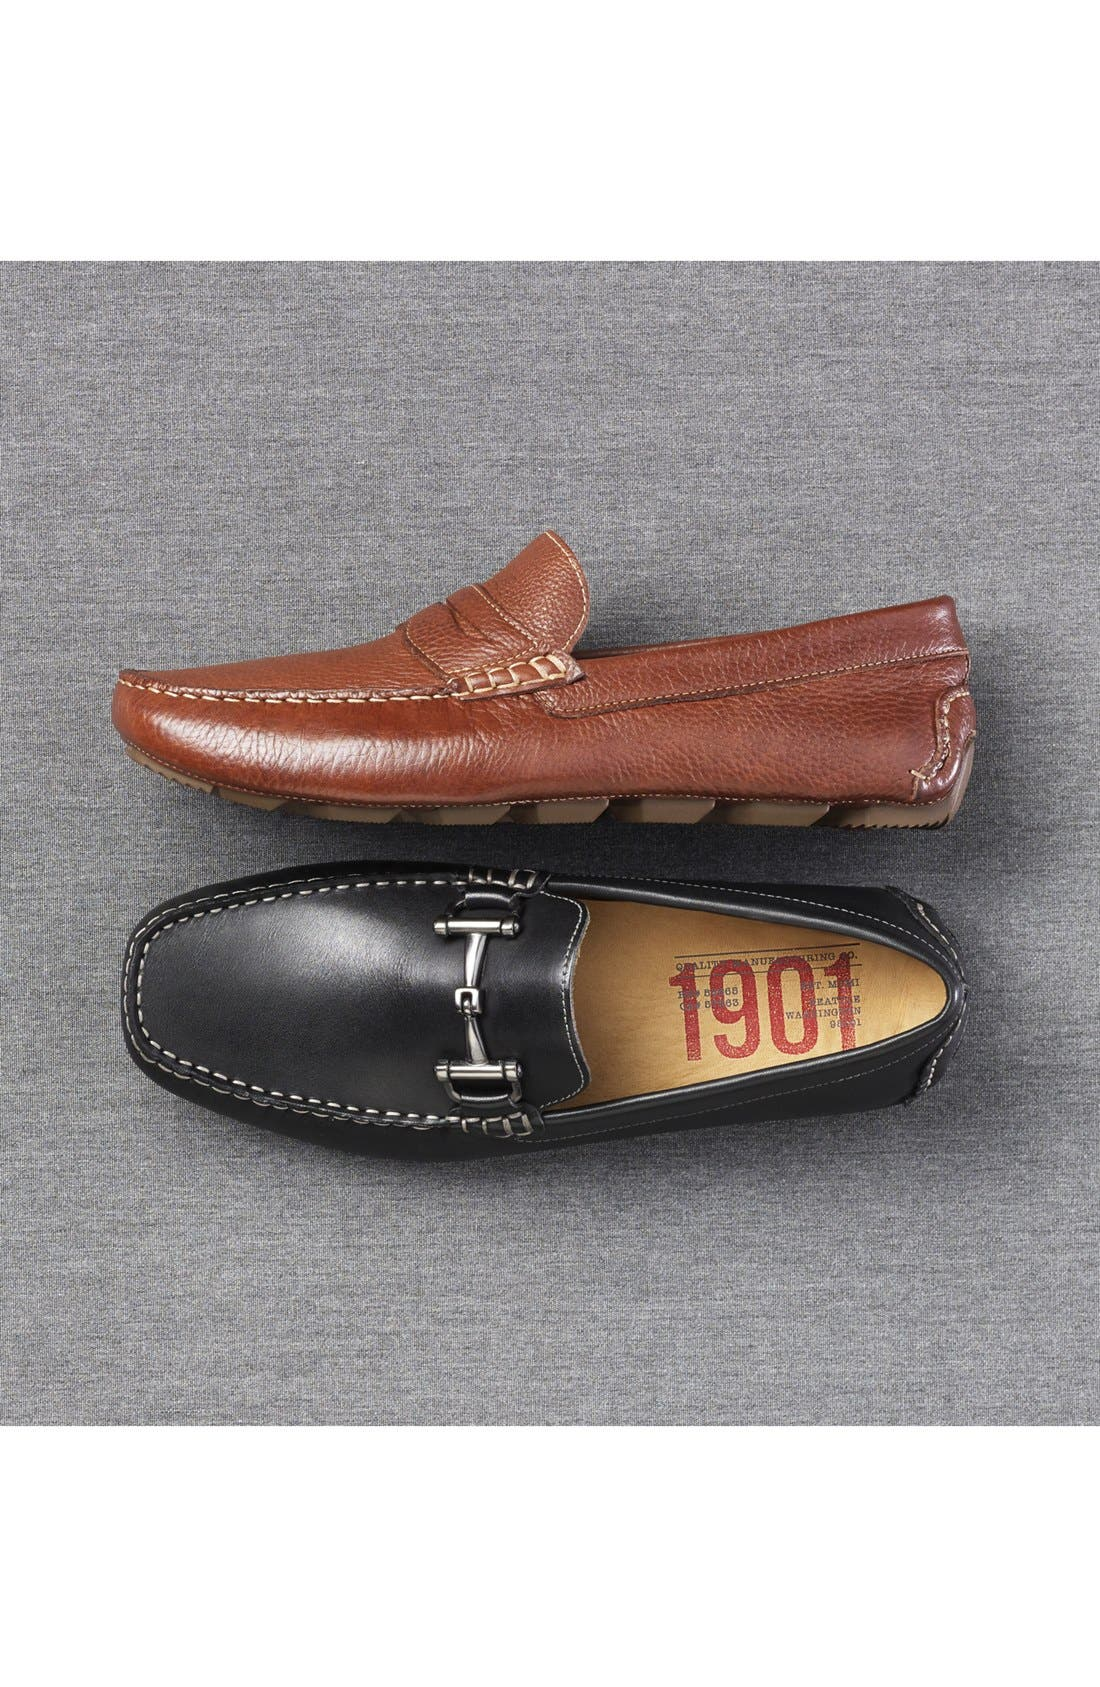 'Bermuda' Penny Loafer,                             Alternate thumbnail 6, color,